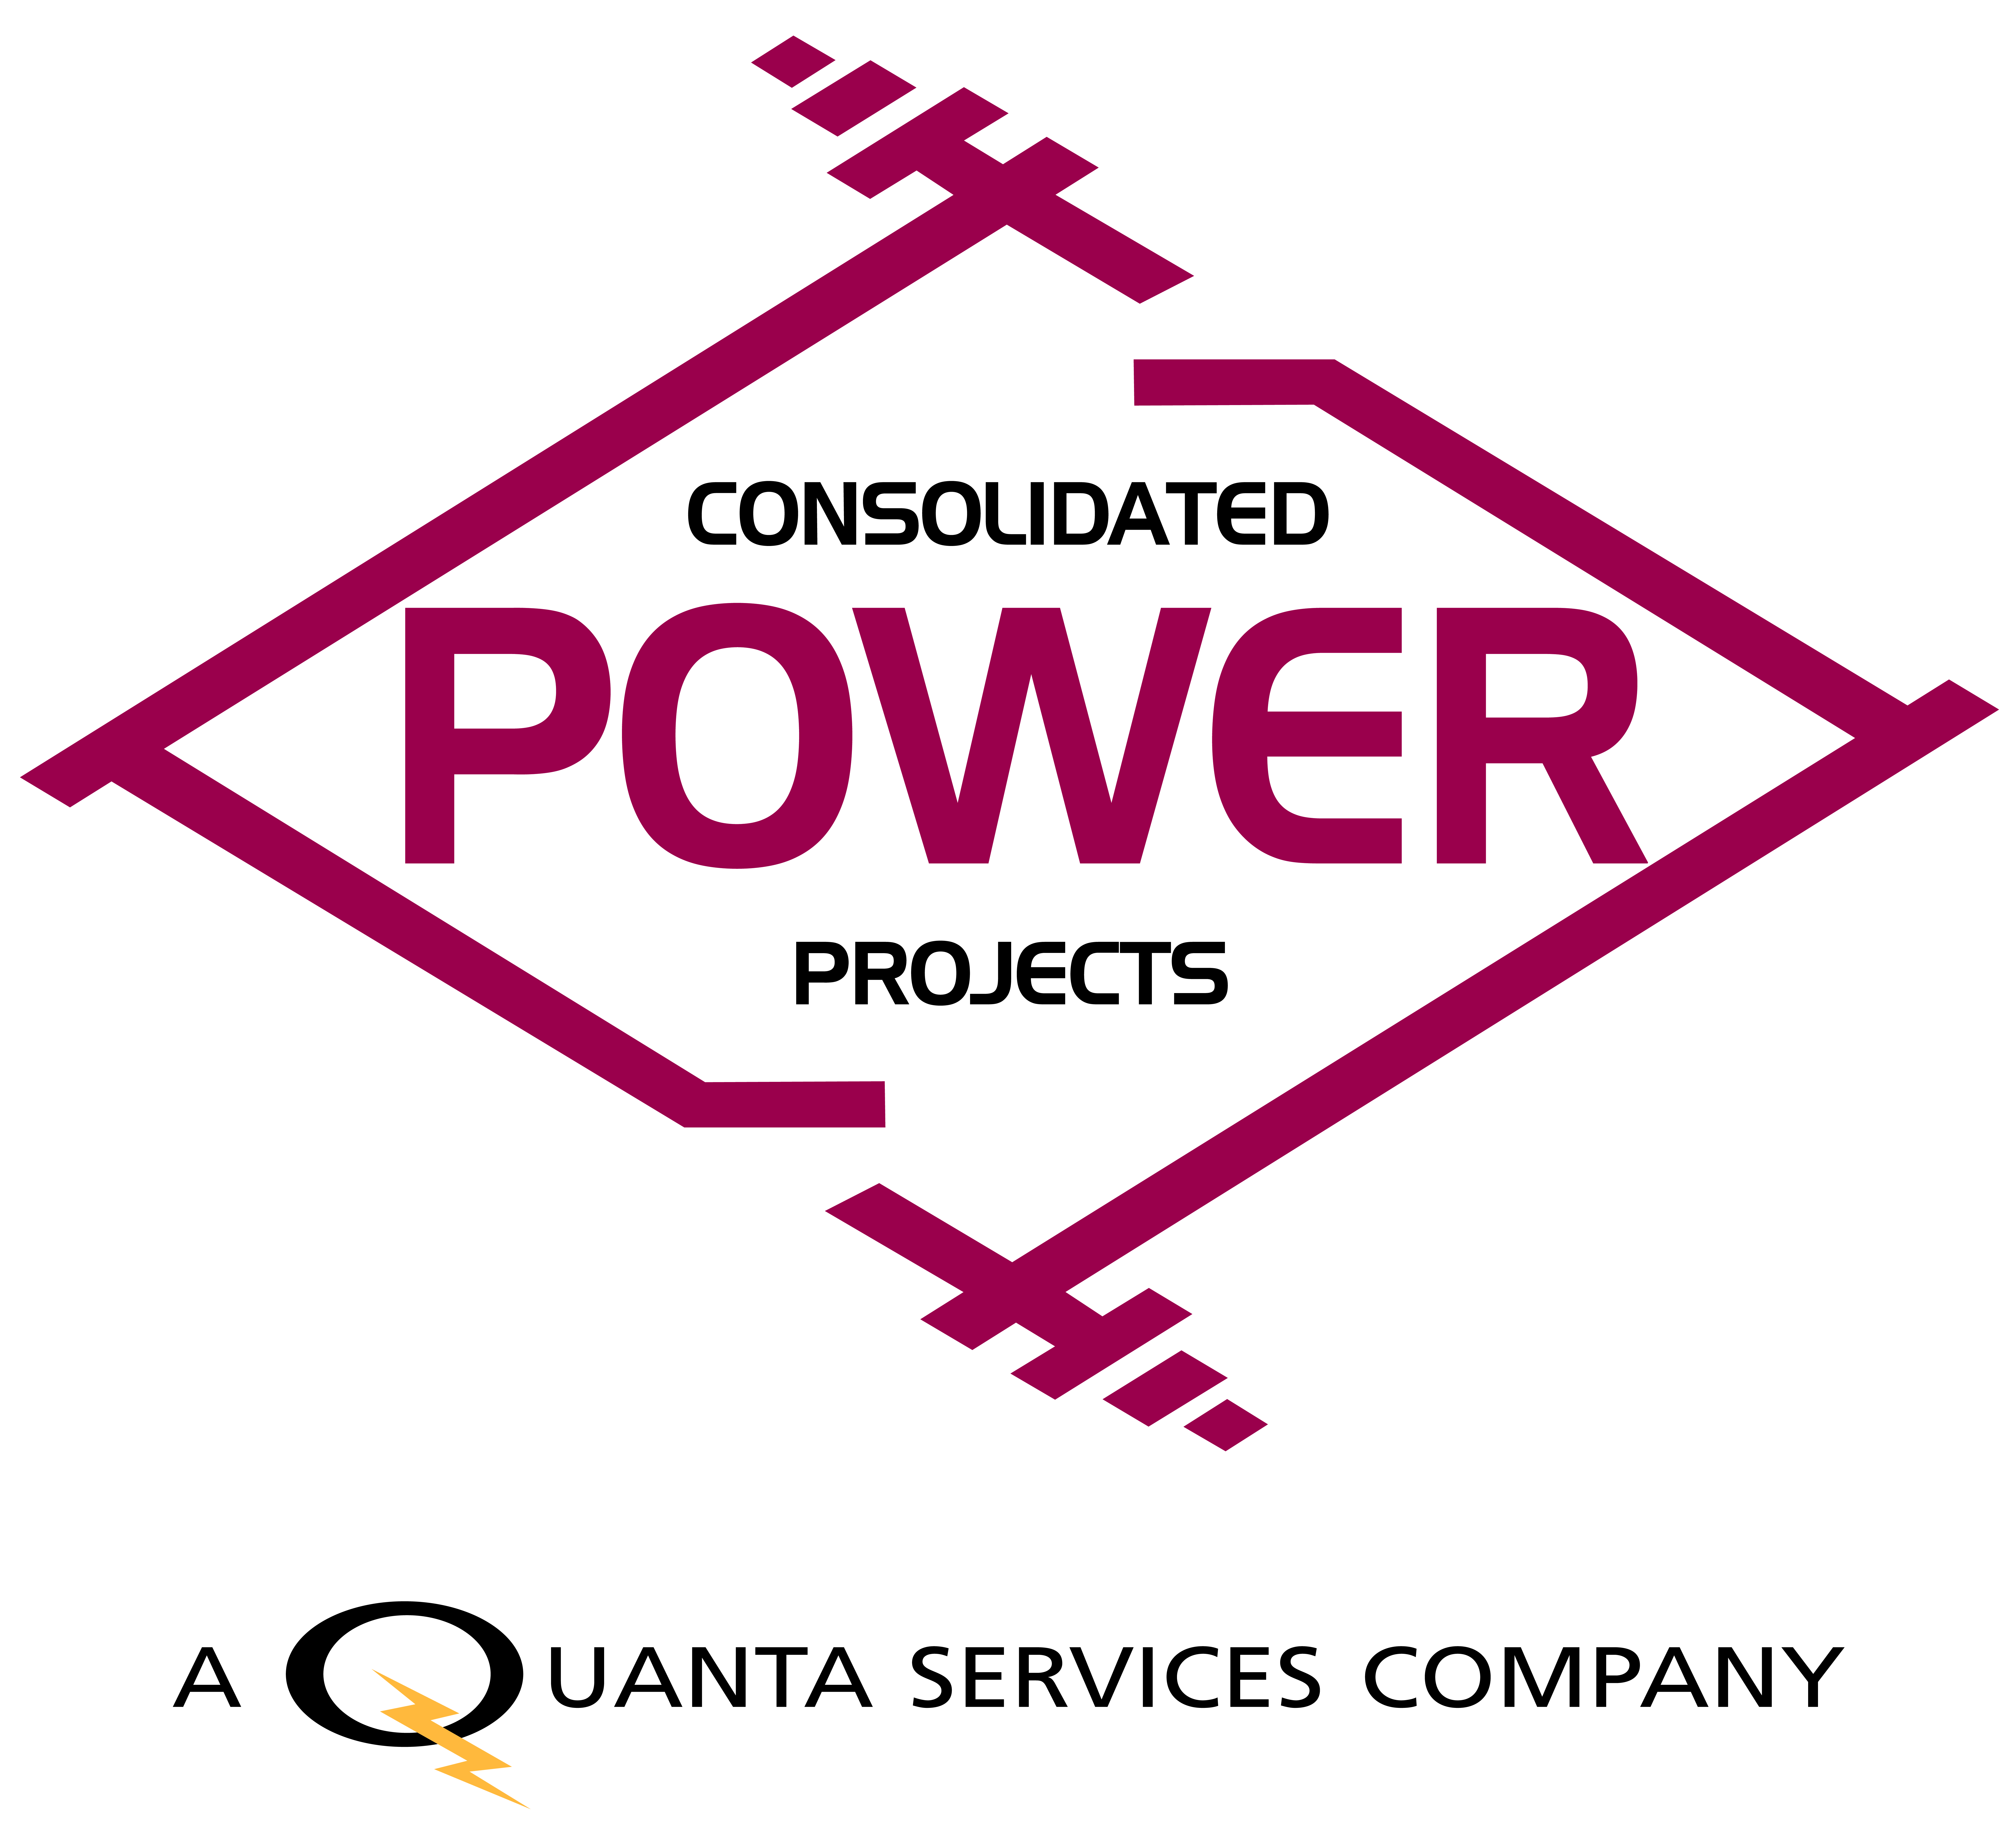 Consolidated Power Projects